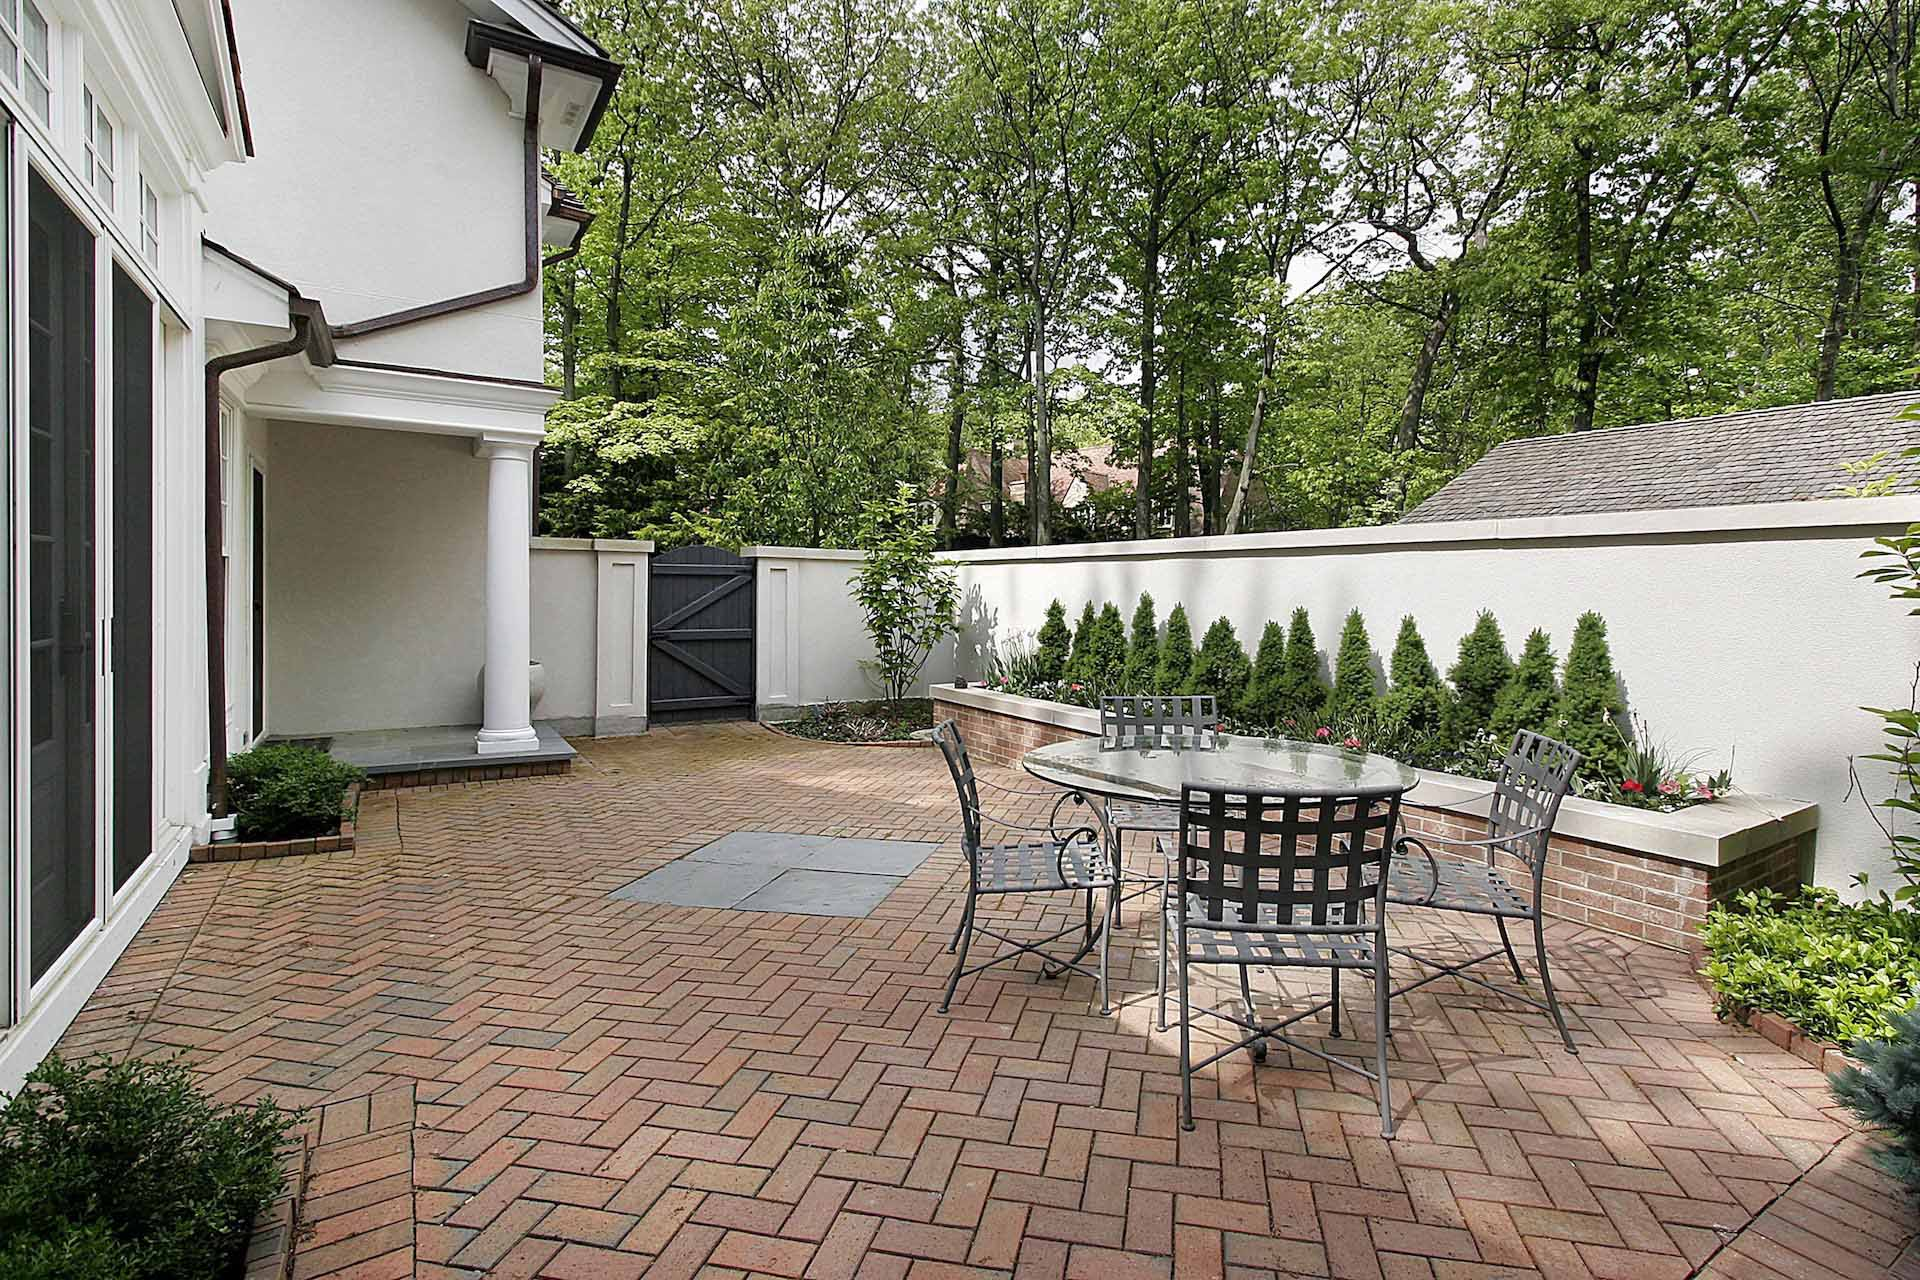 Types of Hardscapes: Brick